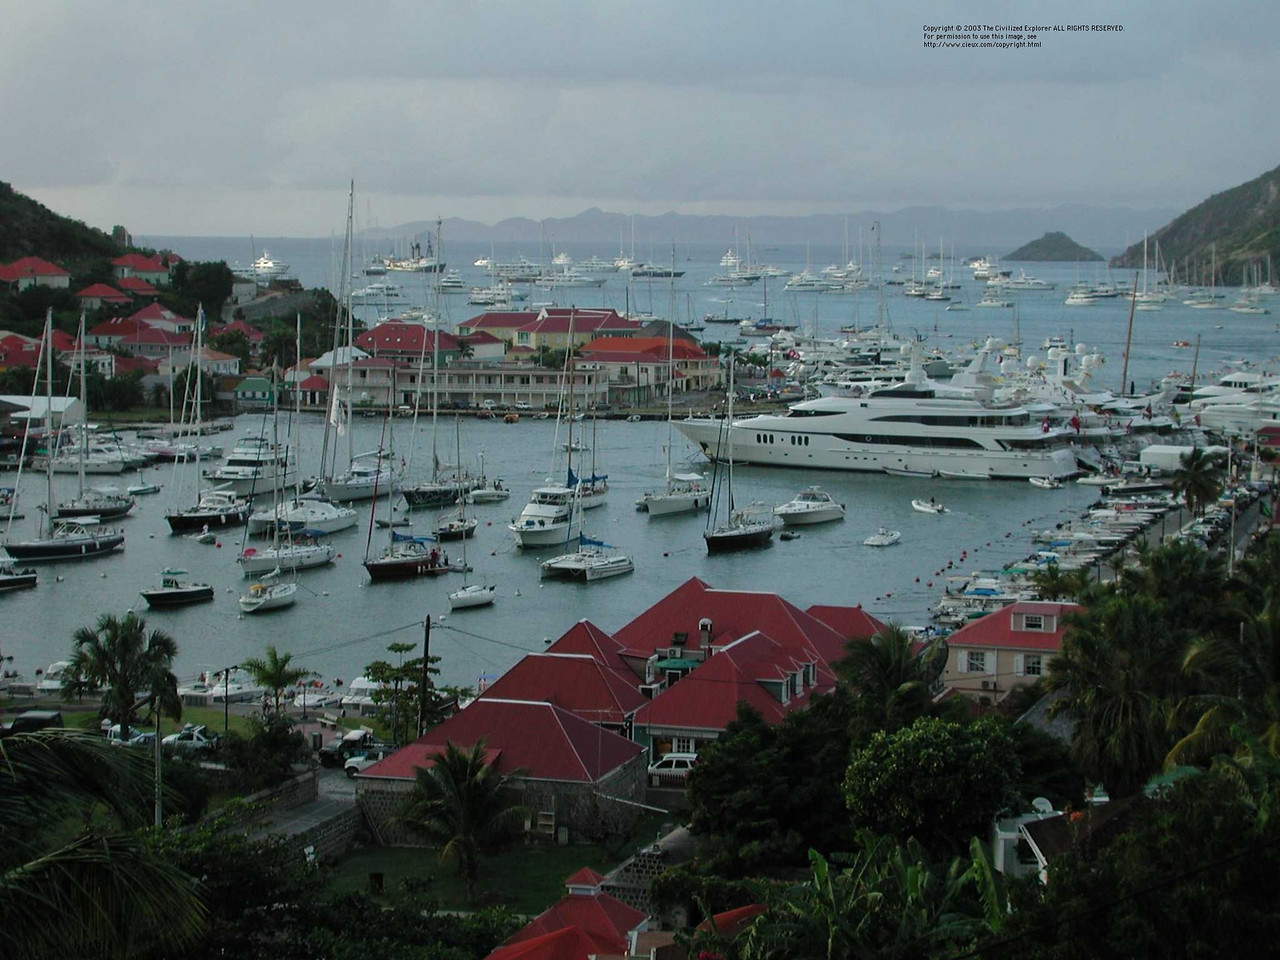 A view of Gustavia